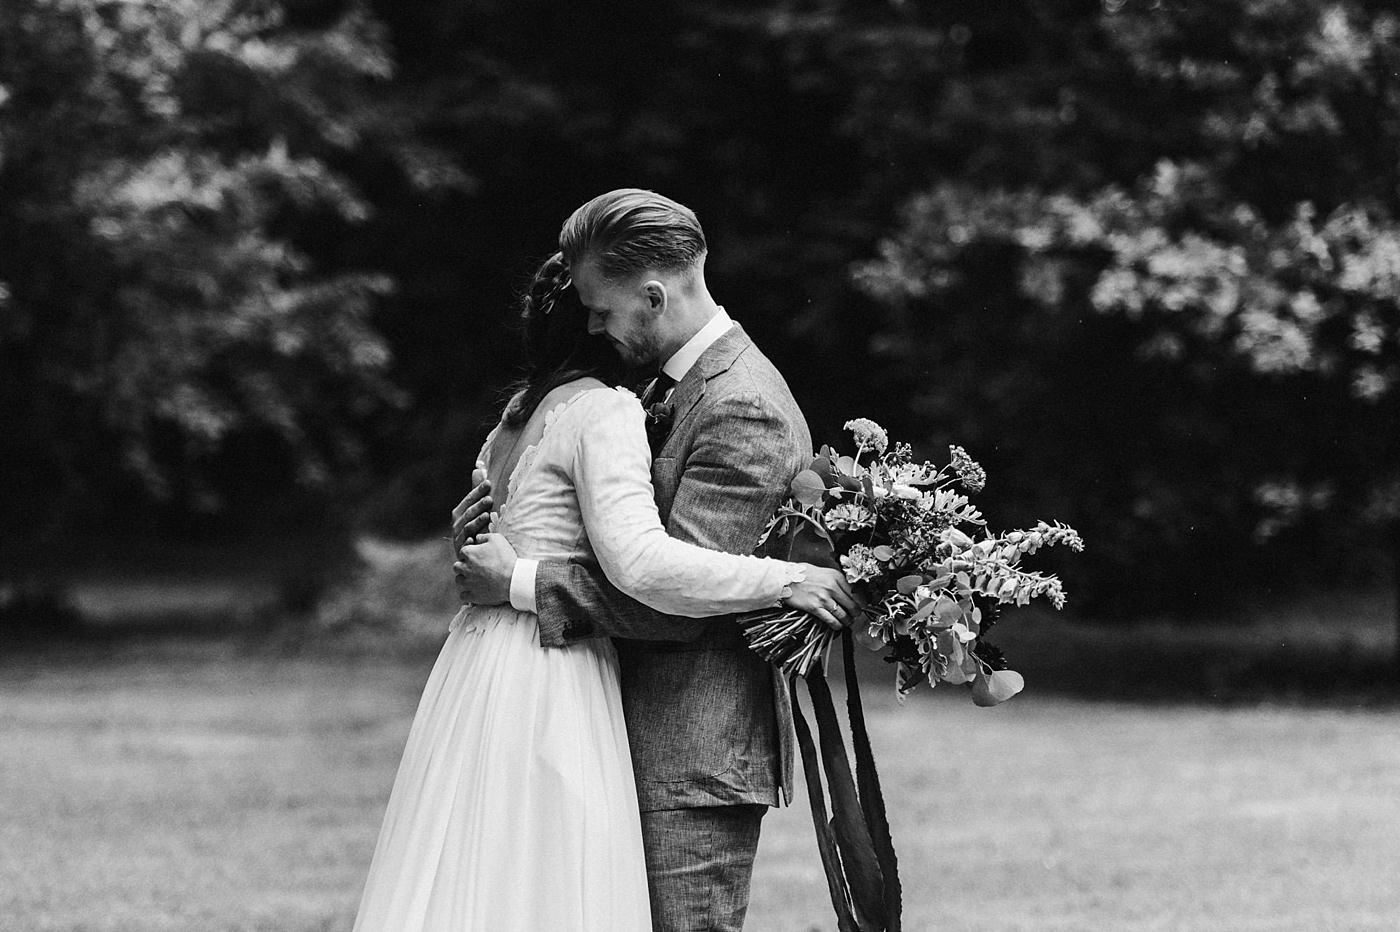 urban-elopement-wedding-111 Merve & Nils emotionales Elopement - Wedding Wesel & Schottlandurban elopement wedding 111 1